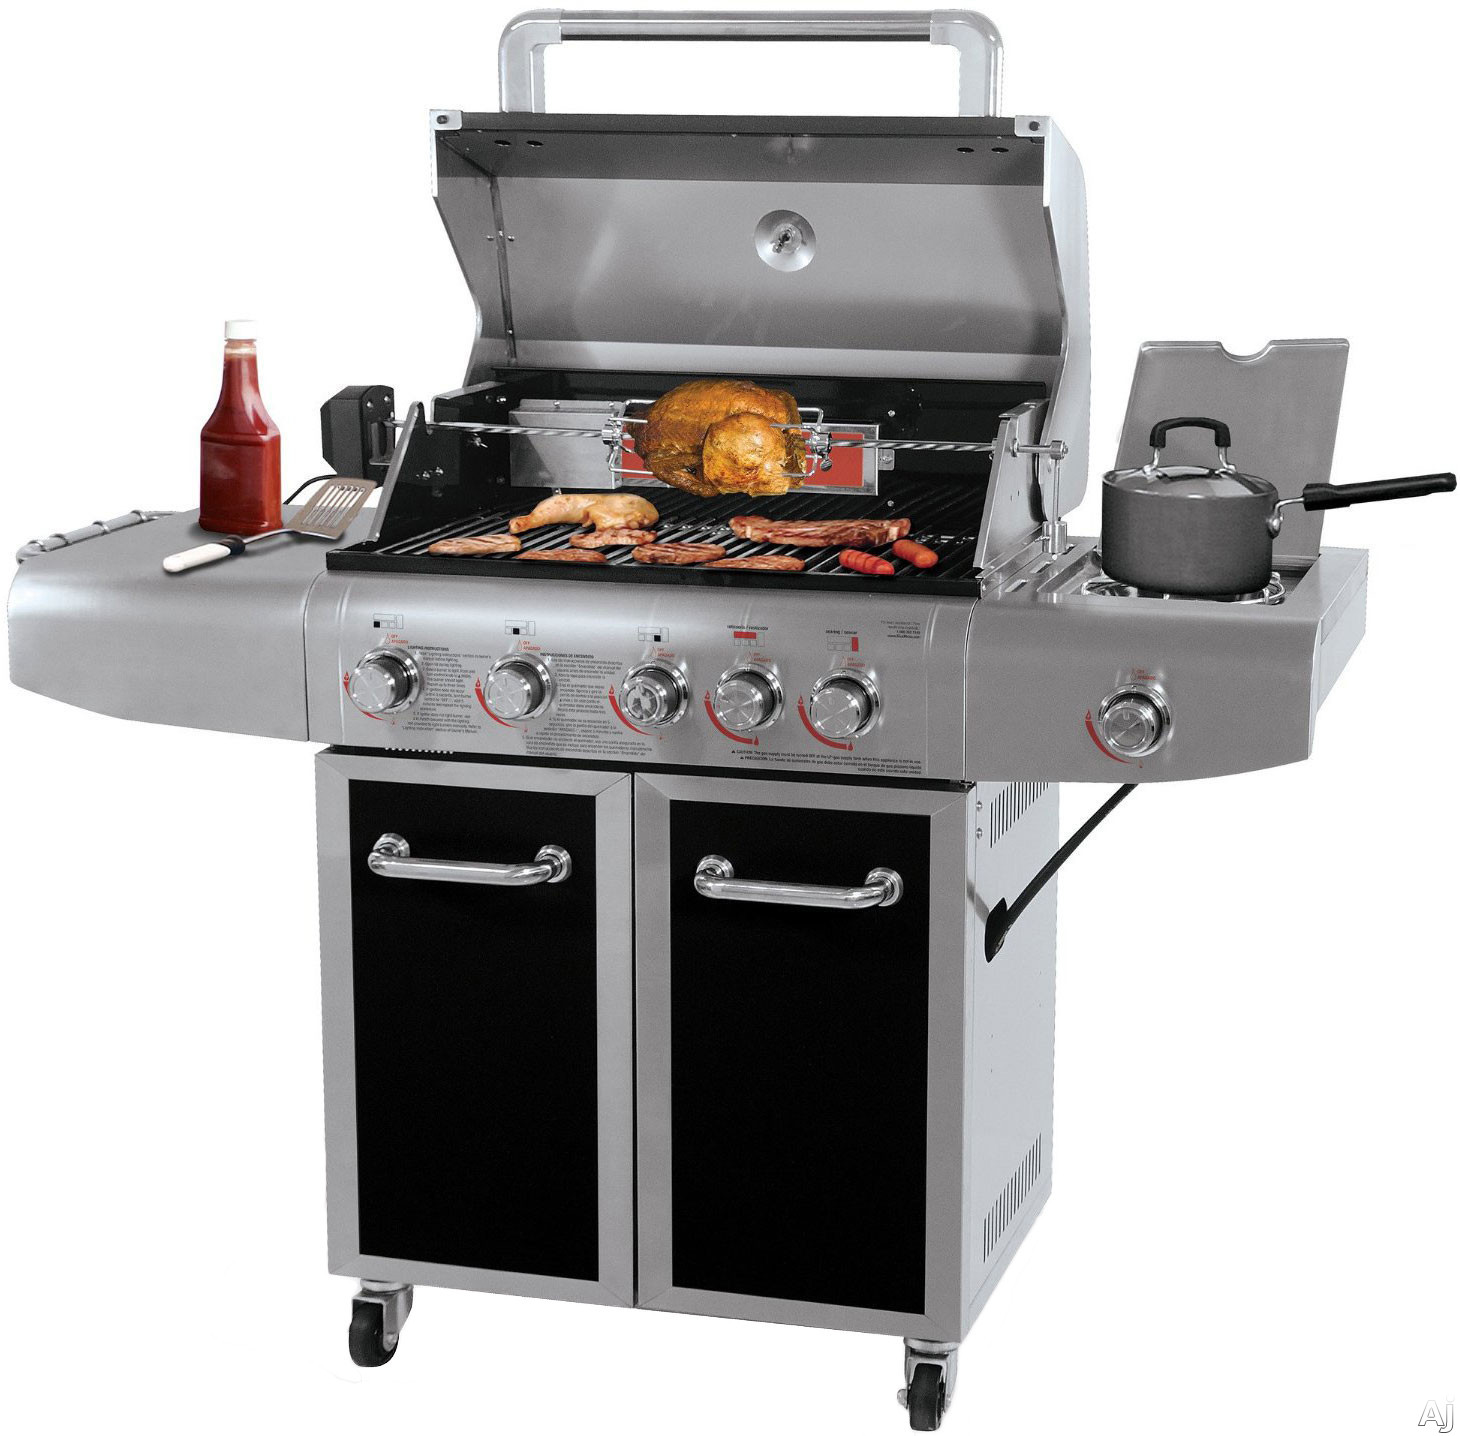 Blue Rhino GBC1273SP 60 Inch Freestanding Gas Grill with Infrared Sear Burner, Rotisserie Burner, Rotisserie Kit, 500 sq. in. Cooking Area, 72,000 BTU and 3 Main Burners GBC1273SP